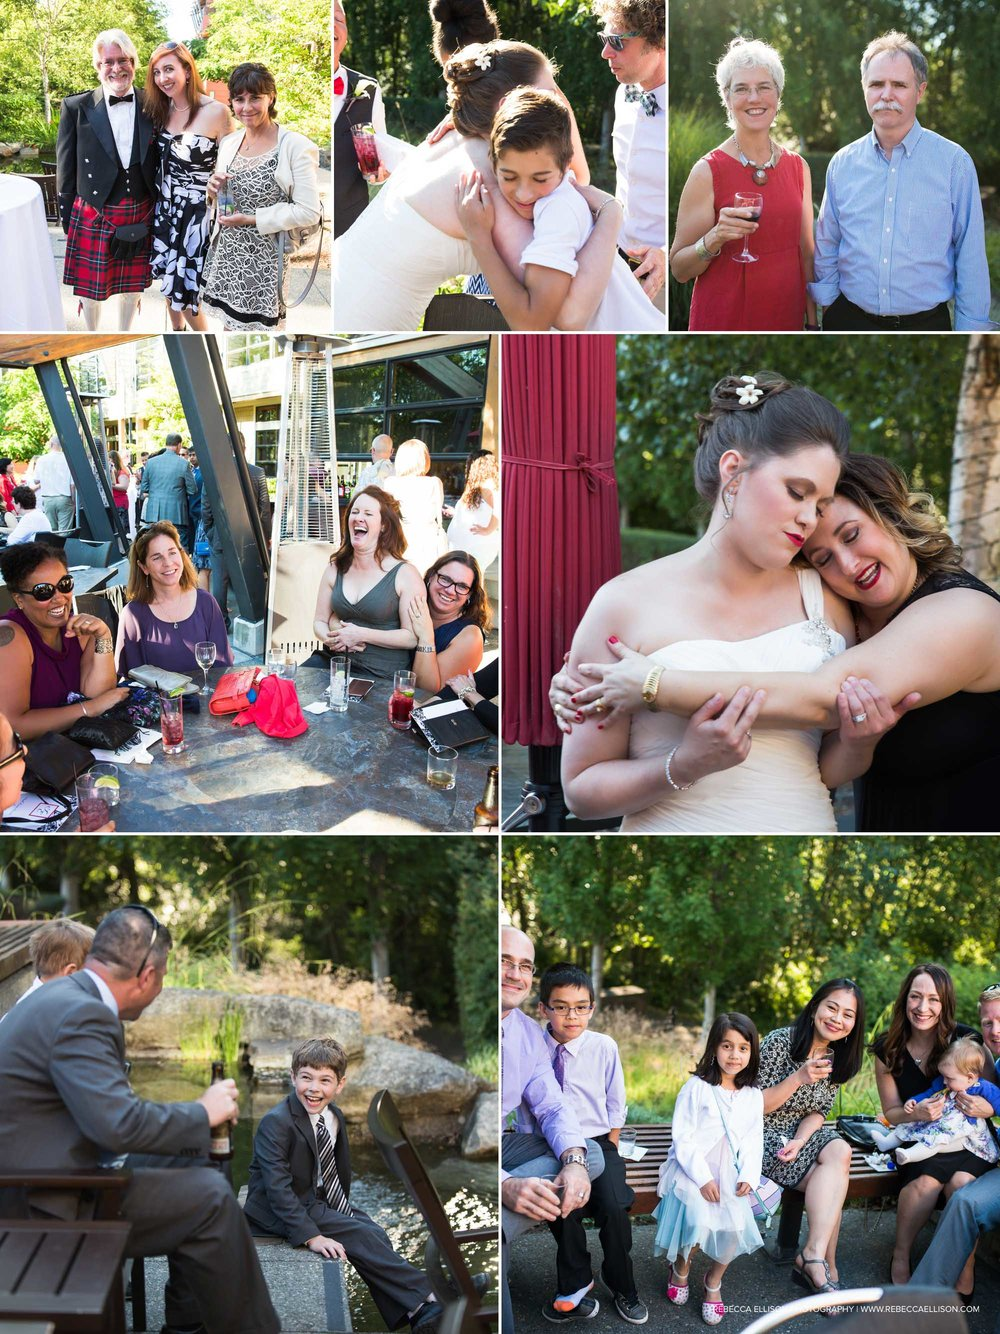 Same-sex-summer-wedding 26web.jpg